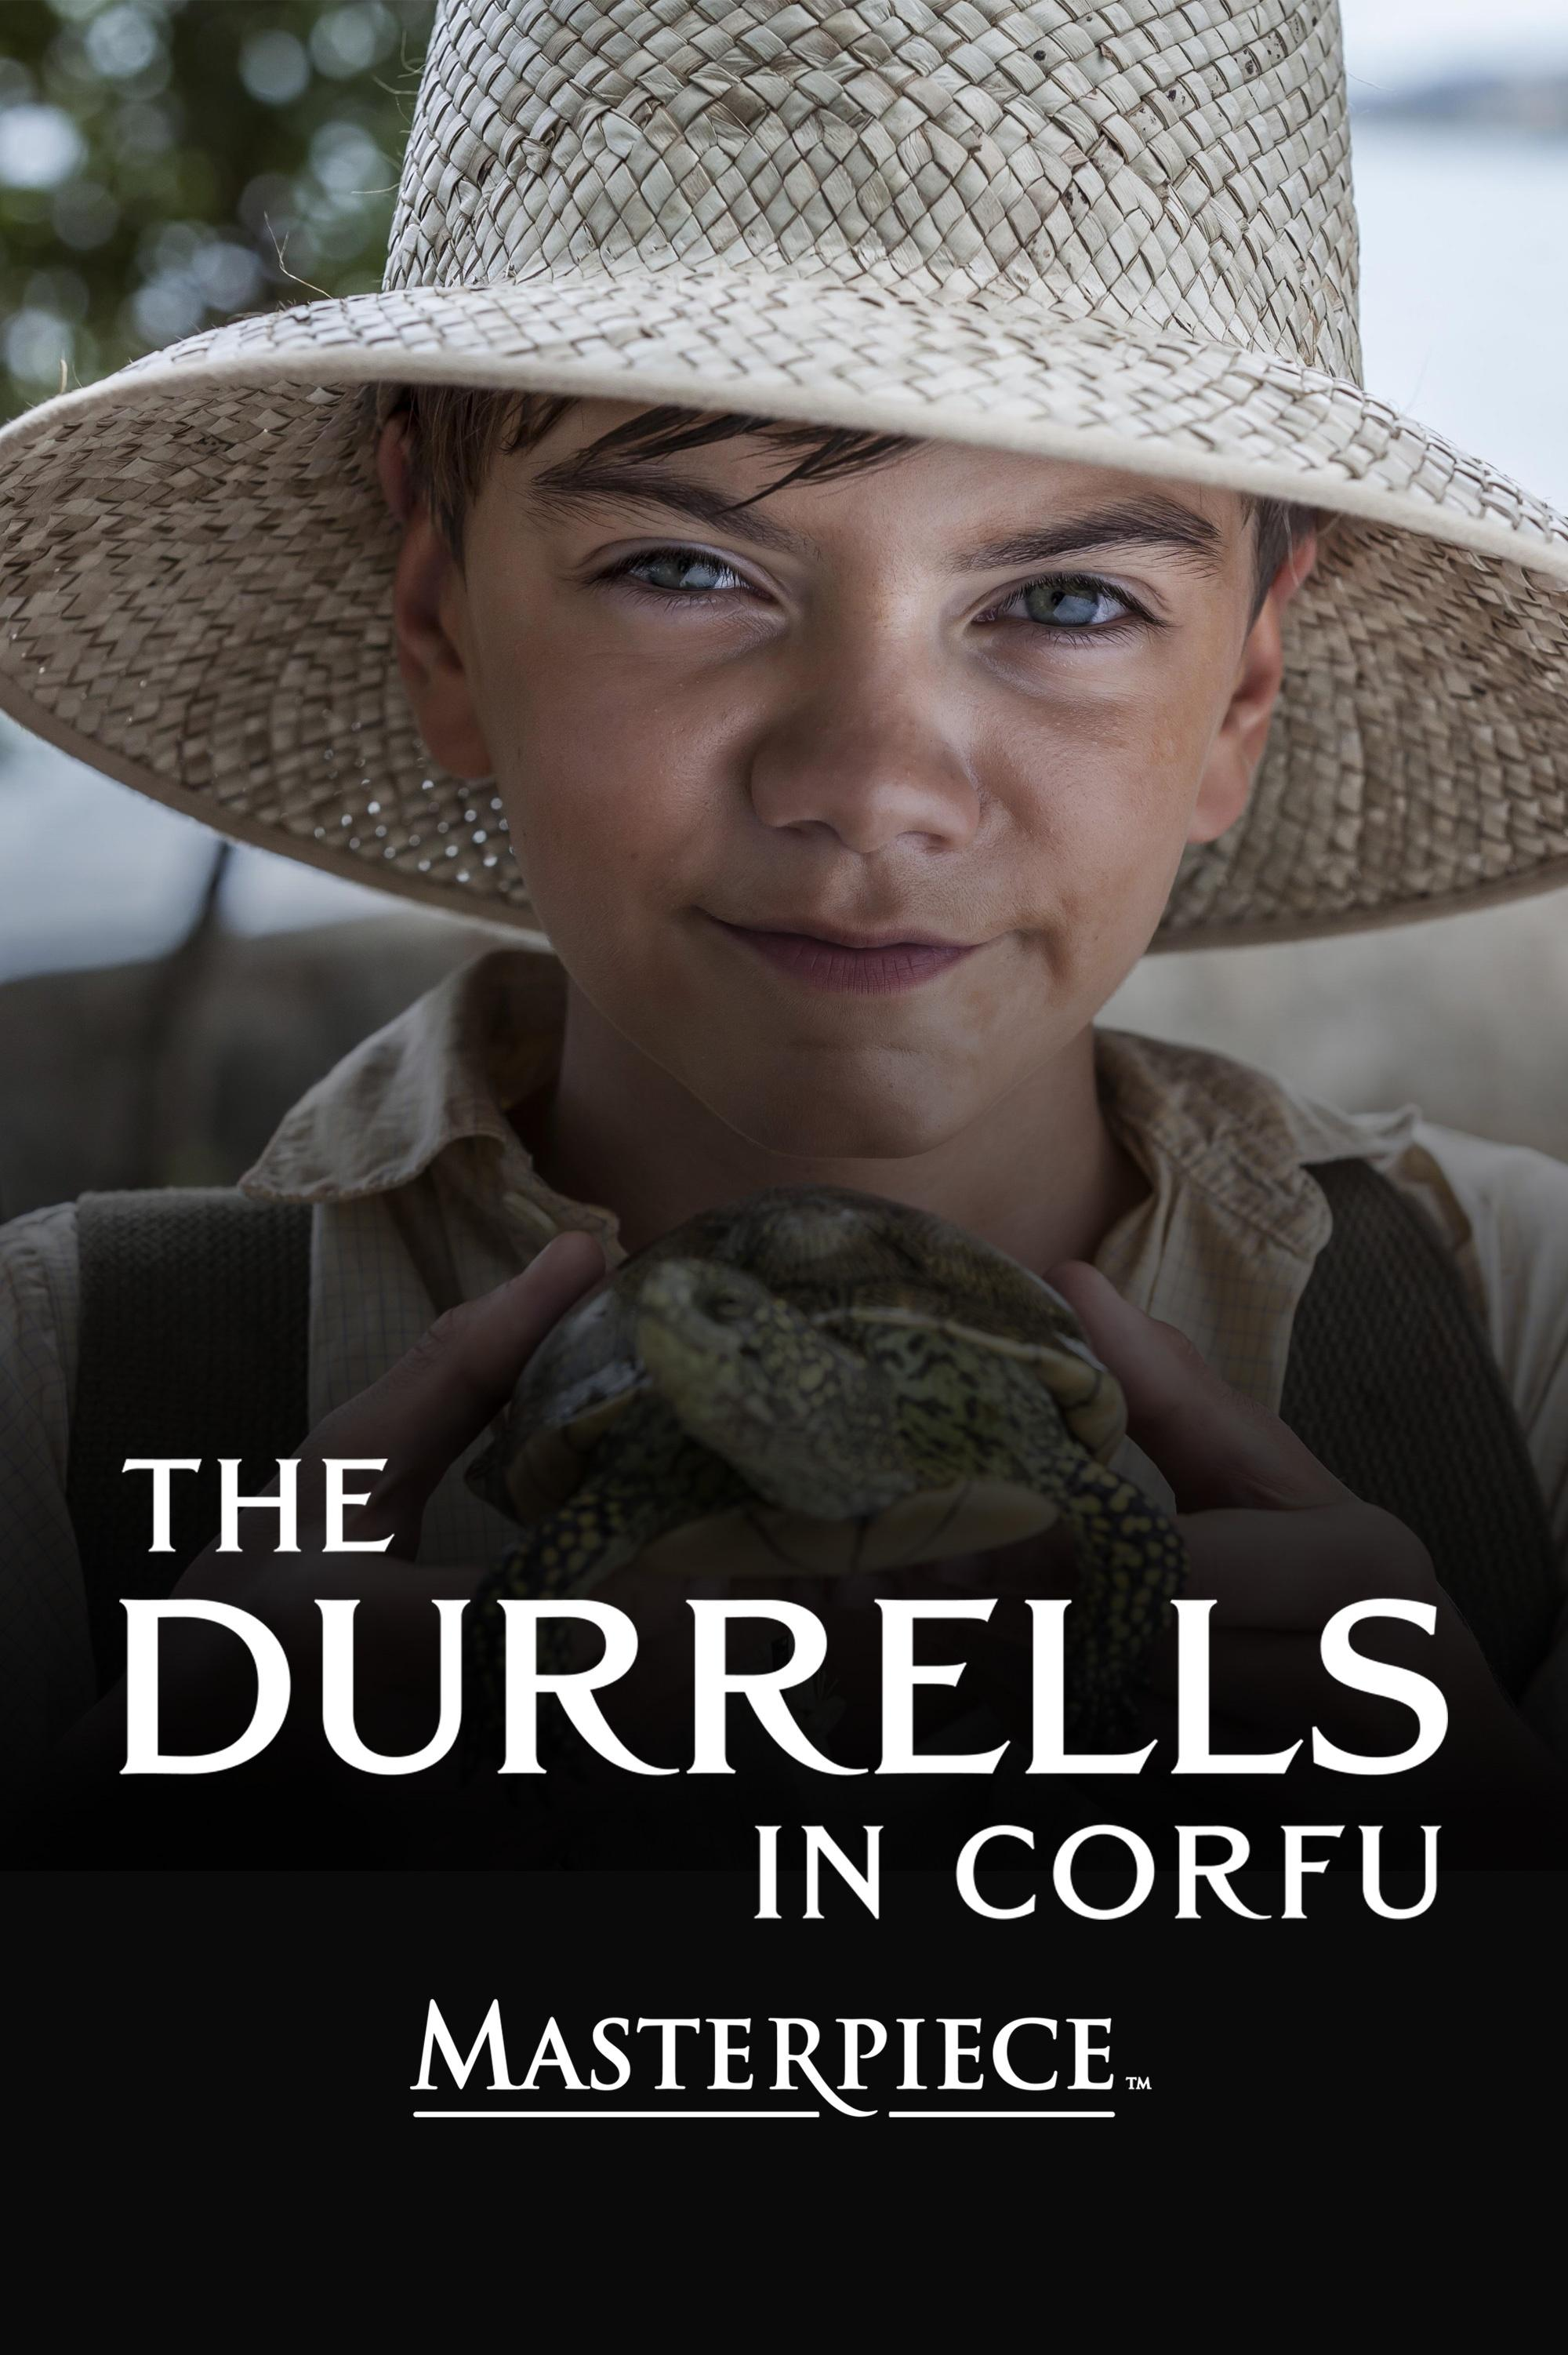 The Durrells in Corfu On Masterpiece